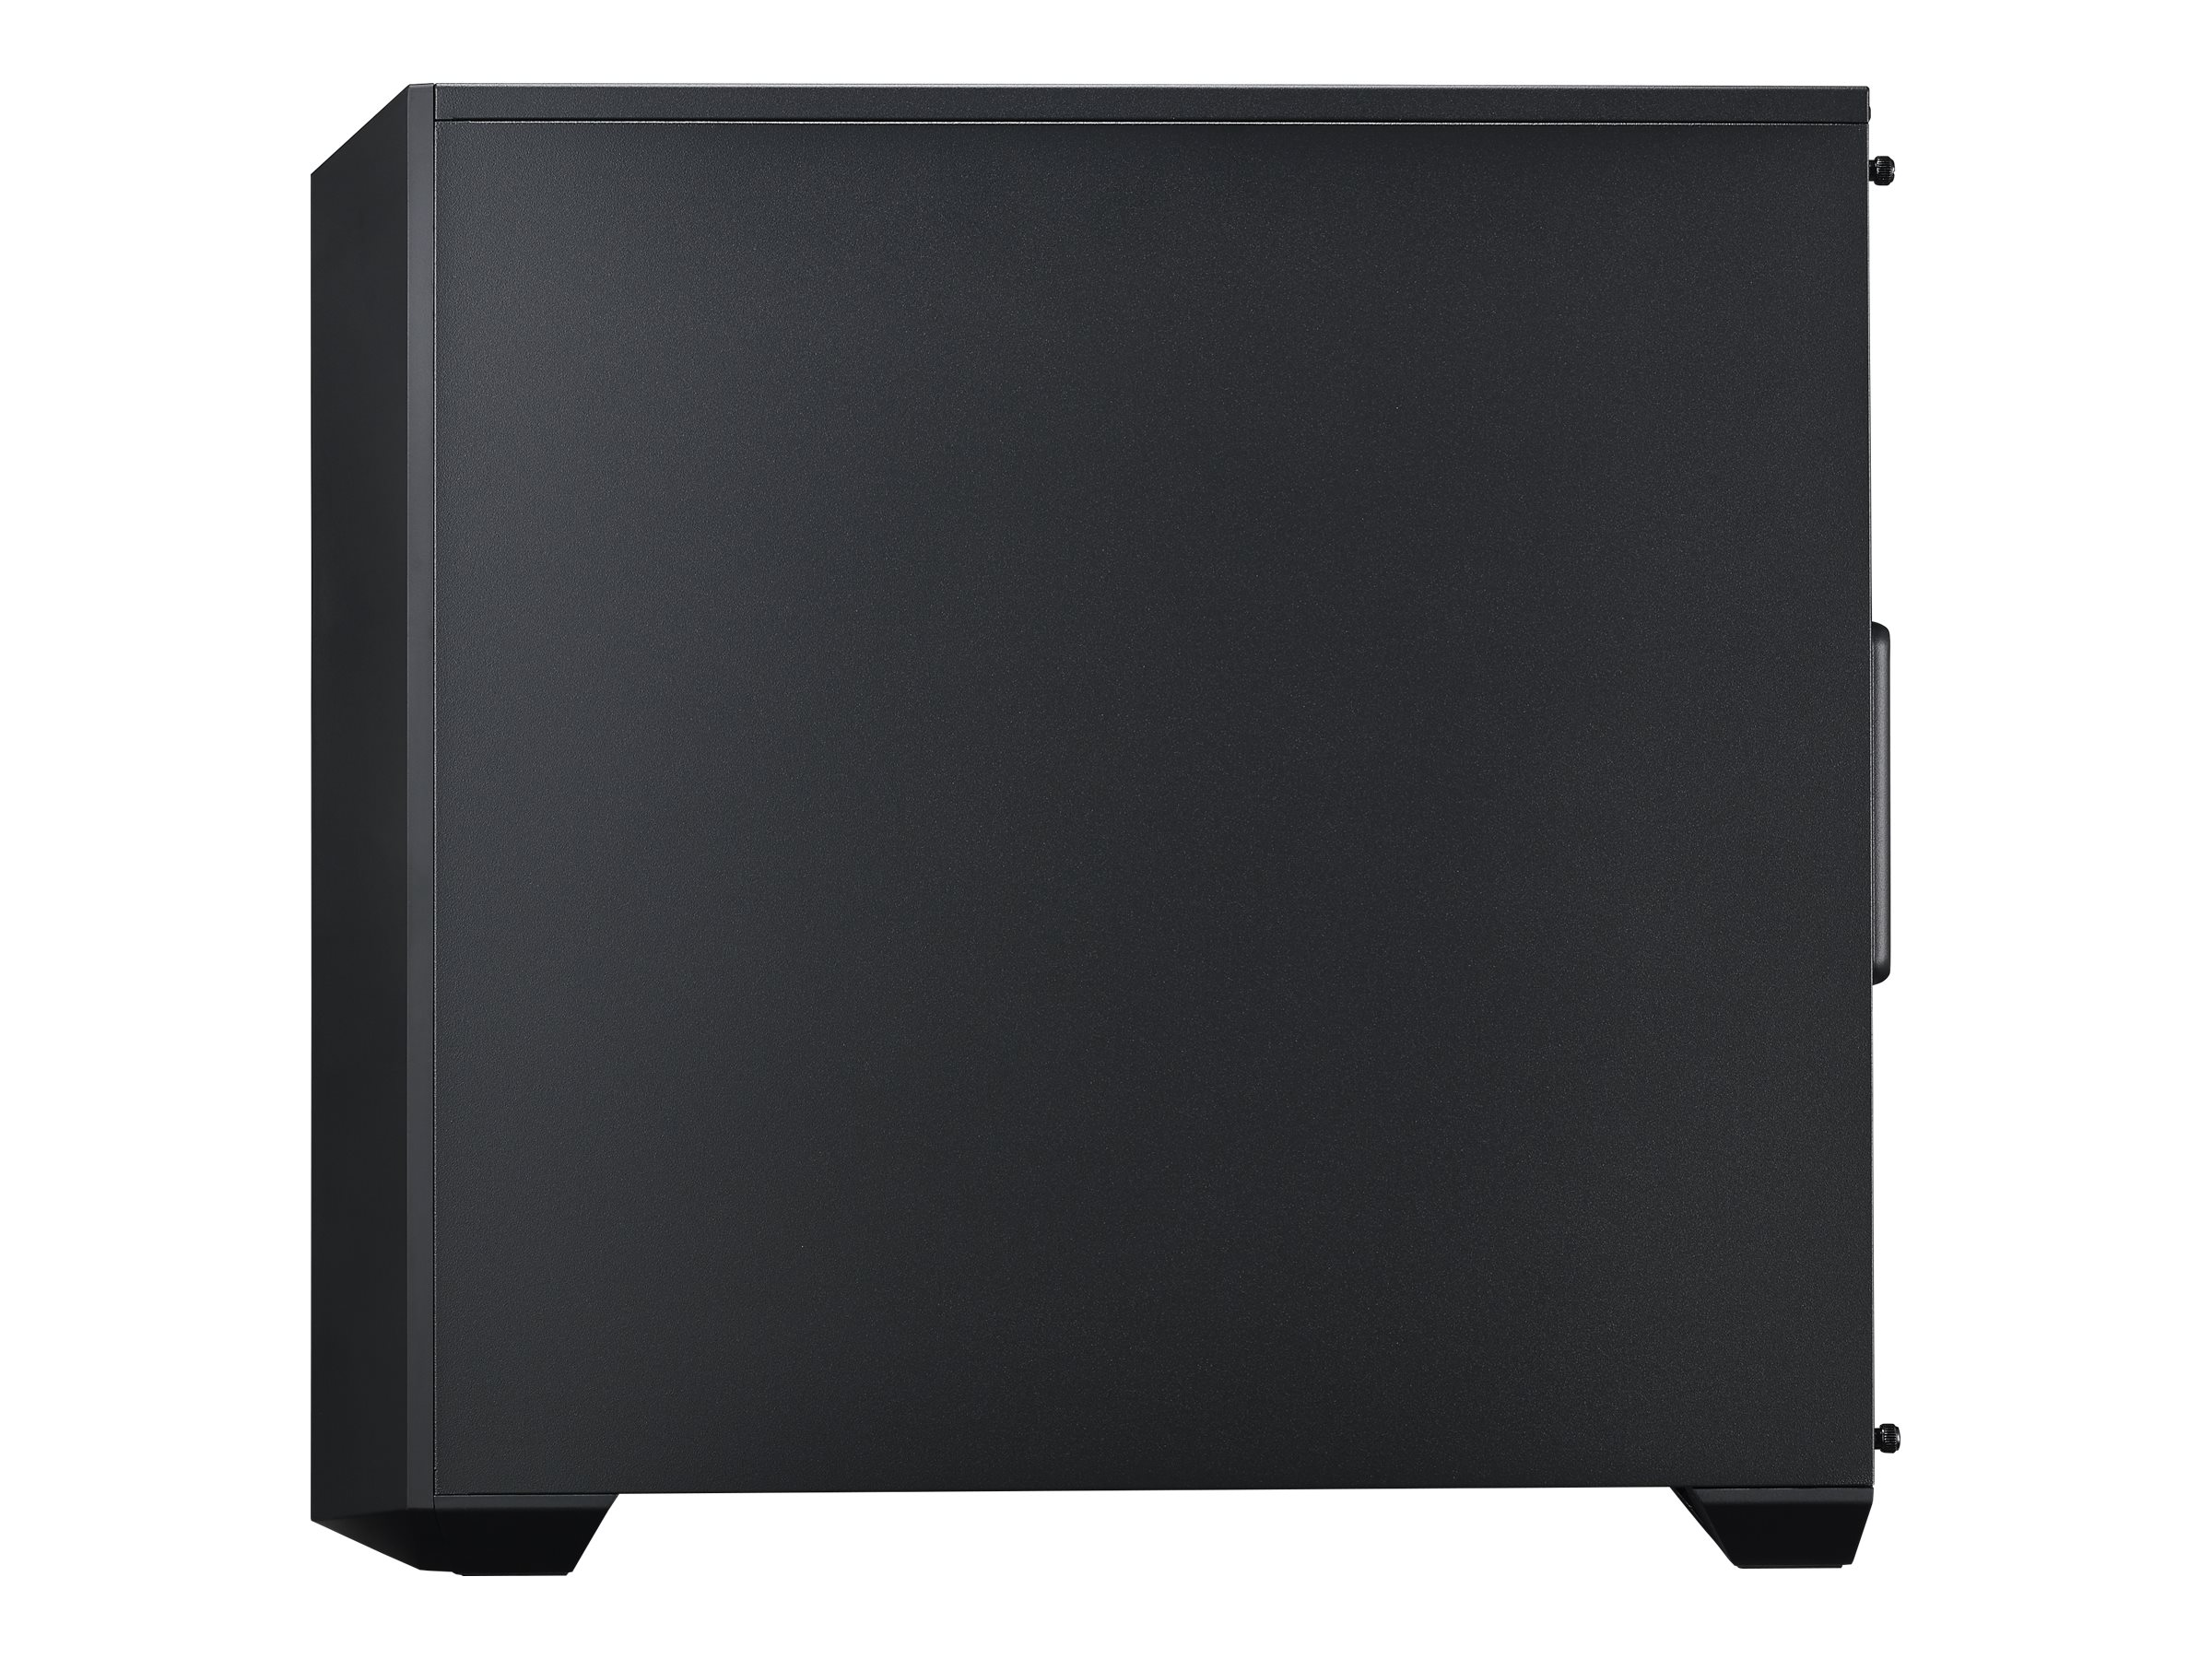 Cooler Master Chassis, MasterBox 5, Black, MCX-B5S1-KWNN-11